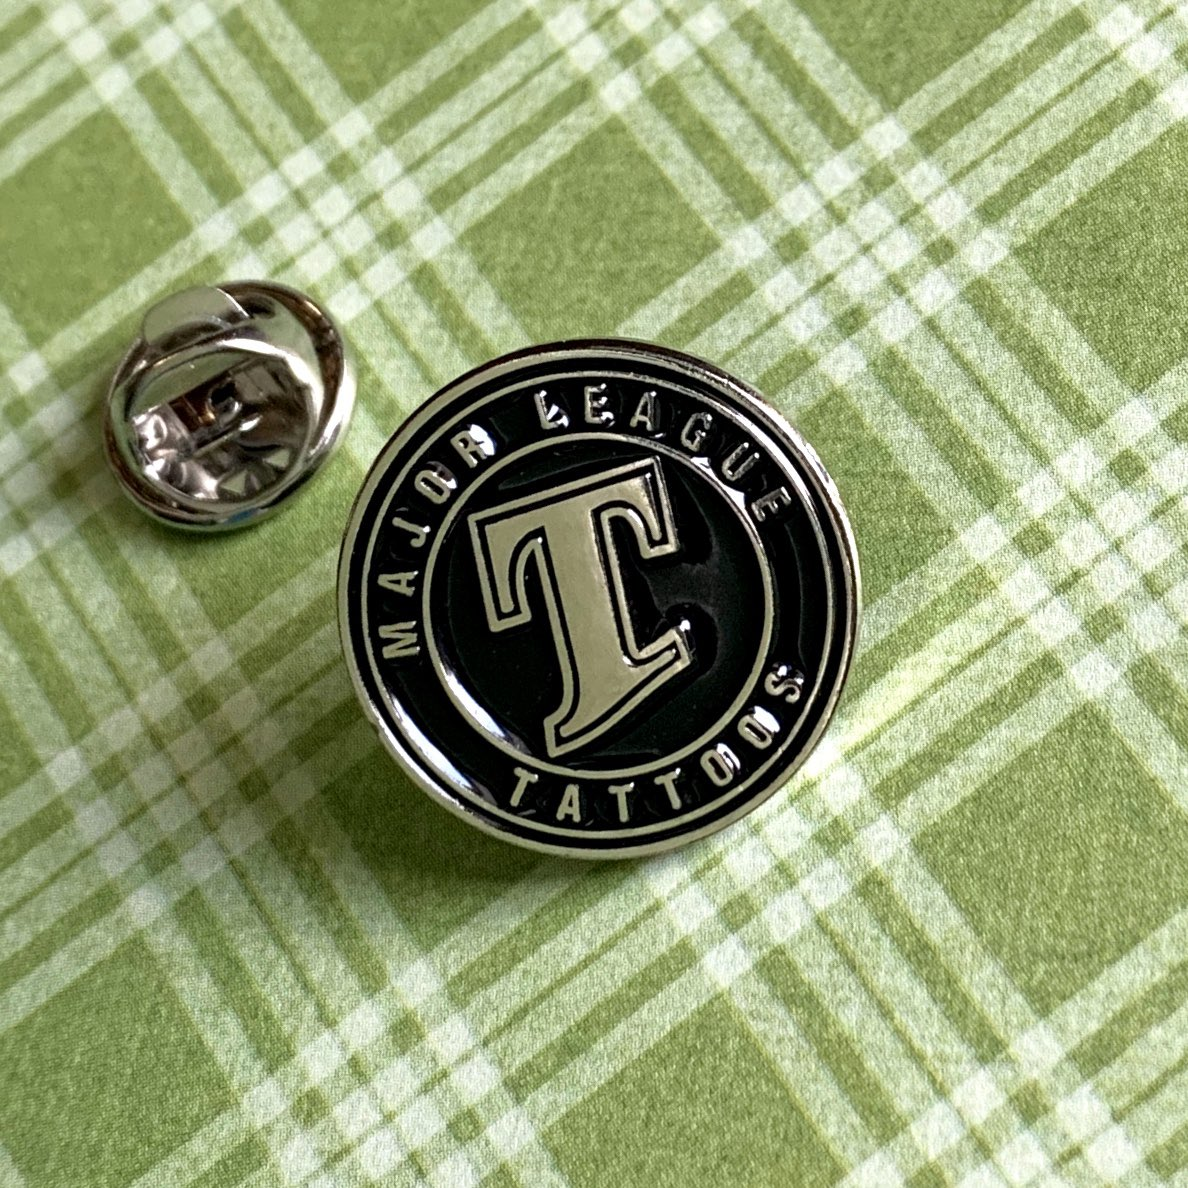 Check out this #pin we made for Major League Tattoos. Represent your #brand or #business with a #custom #enamelpin!  #ink #tattoo #tattooartist #tattooart #tattooartworks #pingame #pincommunity #pinlove #pinlovers #pins #tattooartists #tattoomagazine #branding #marketyourbusinesspic.twitter.com/IkhR5Qiw3d